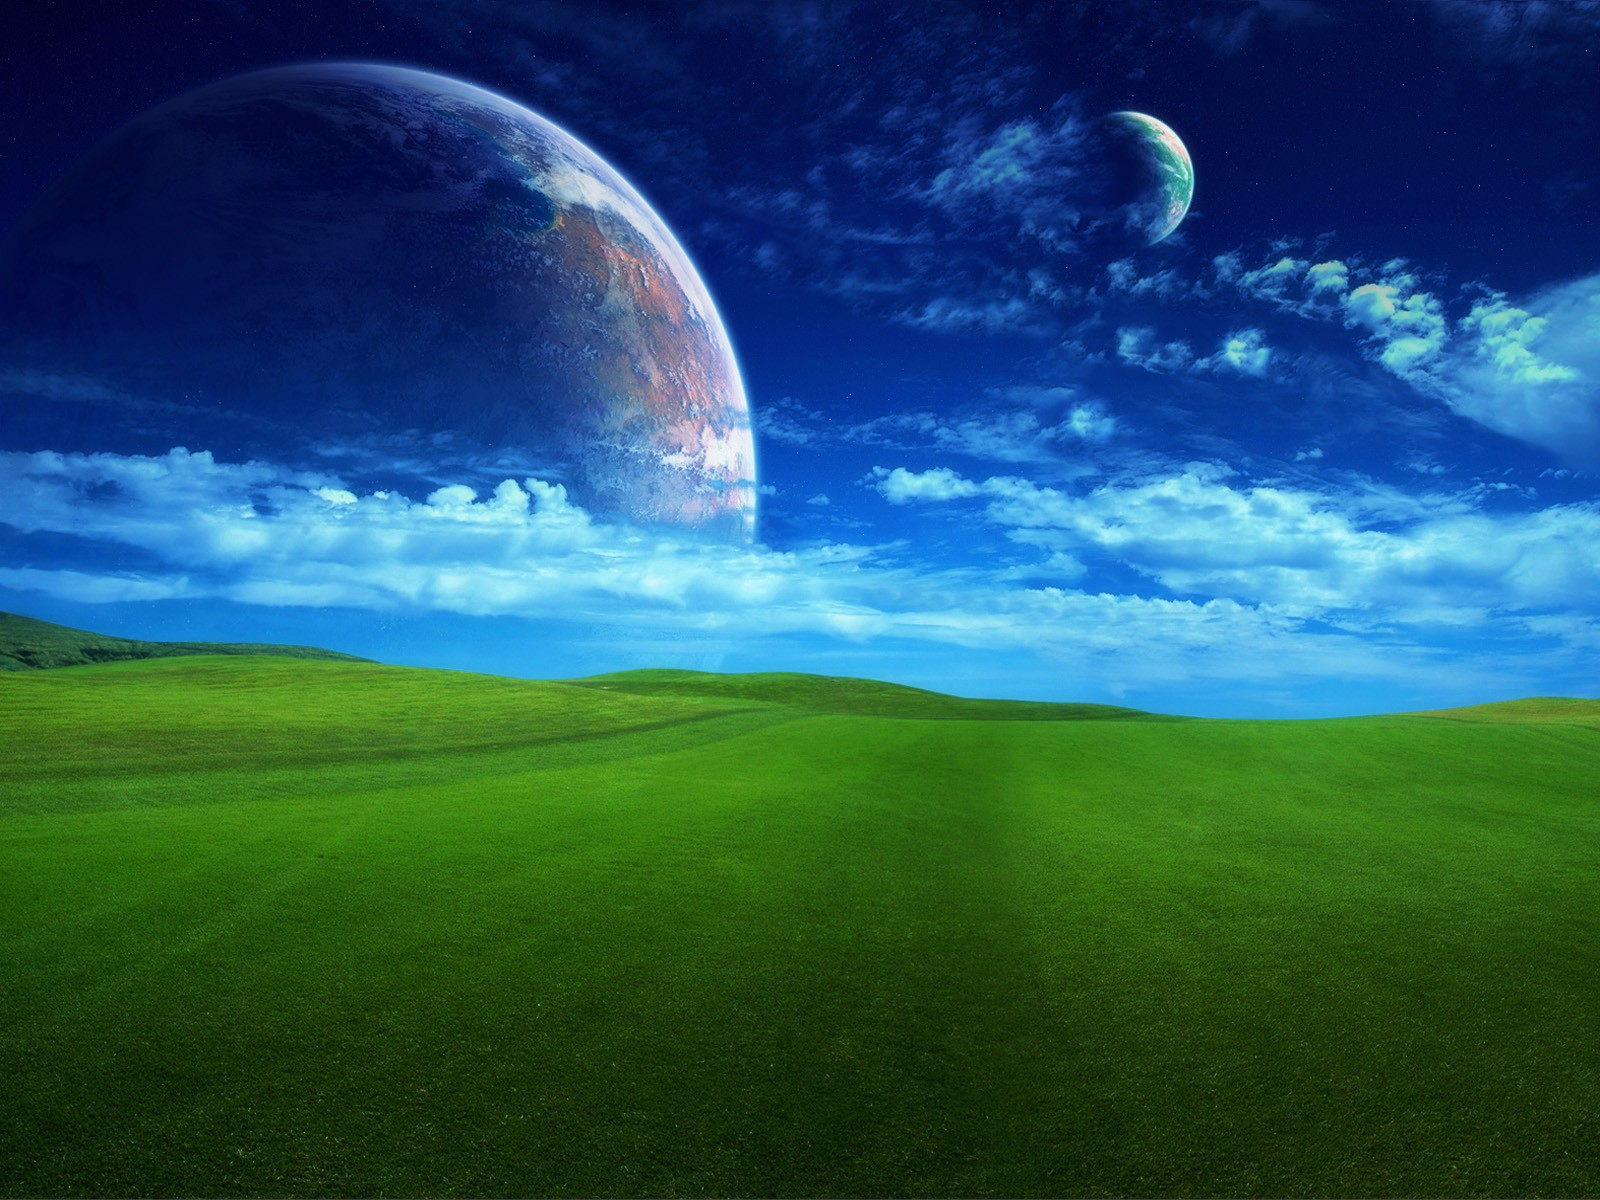 http://3.bp.blogspot.com/-5gOQC-jDbJ0/TnaxSH-PZqI/AAAAAAAAABw/Ss4ahwGvvSQ/s1600/planet_and_the_field_desktop_wallpaper_32989.jpg